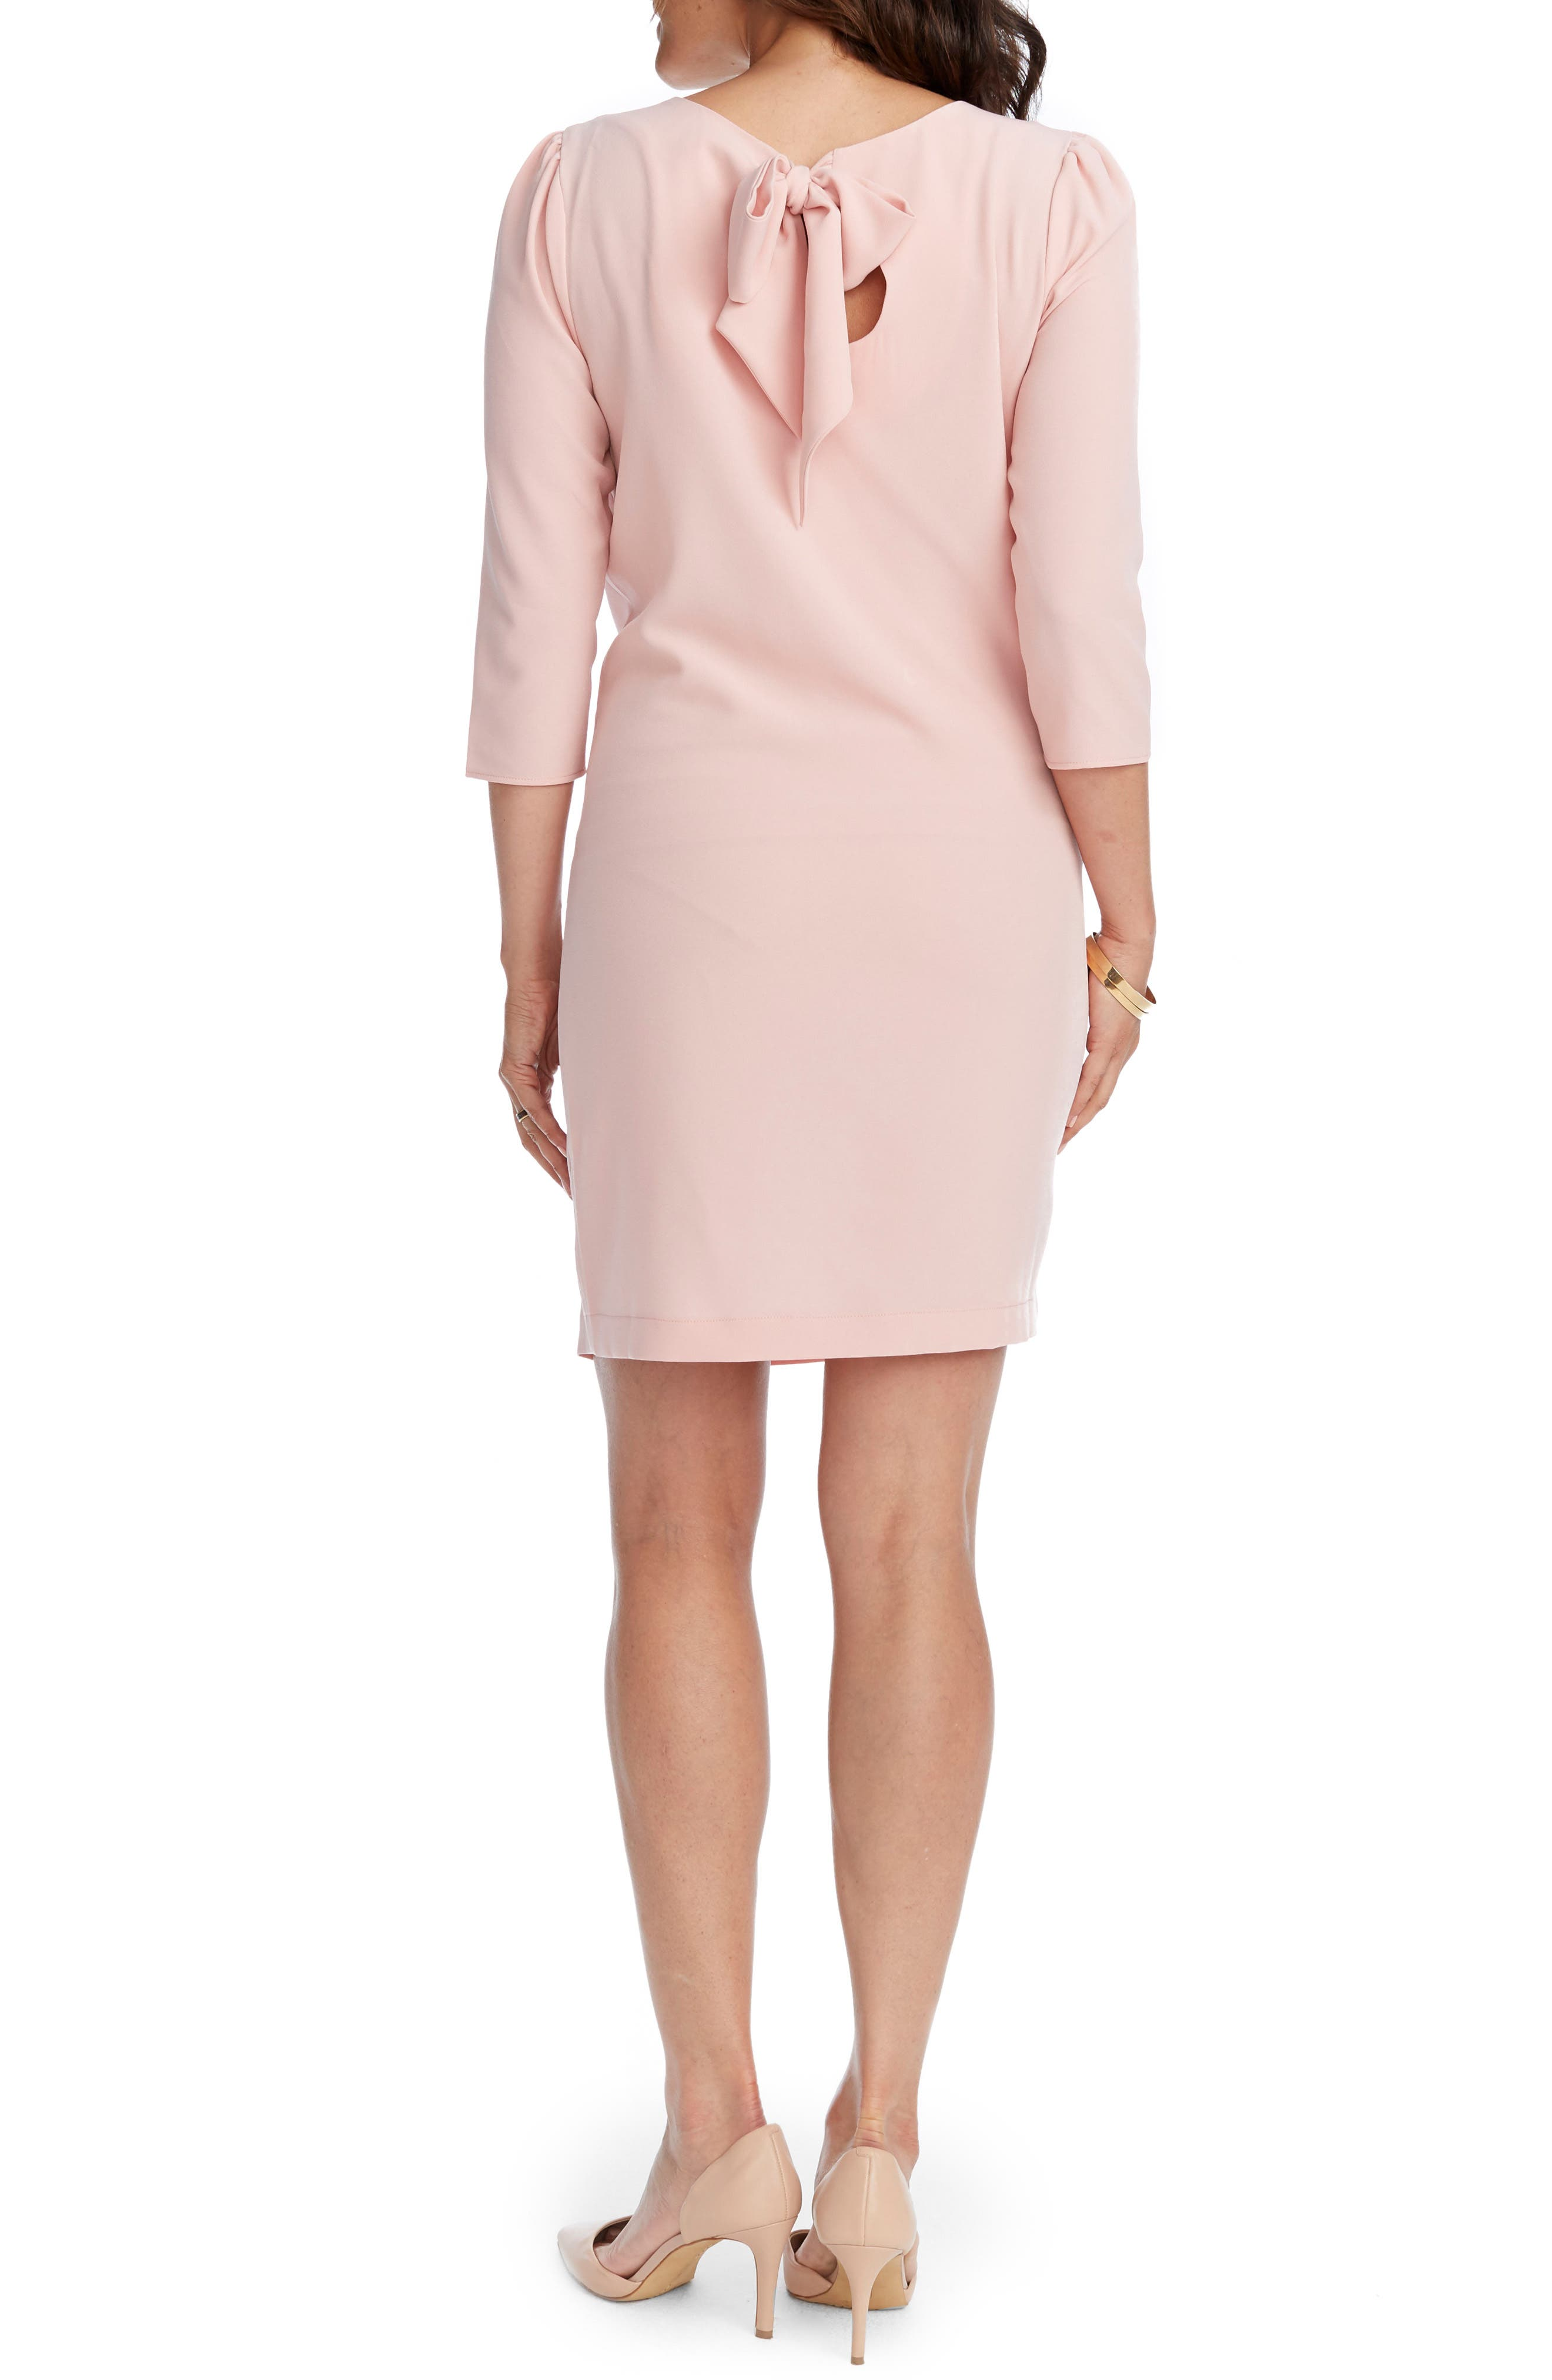 Cammie Maternity Shift Dress,                             Alternate thumbnail 2, color,                             680